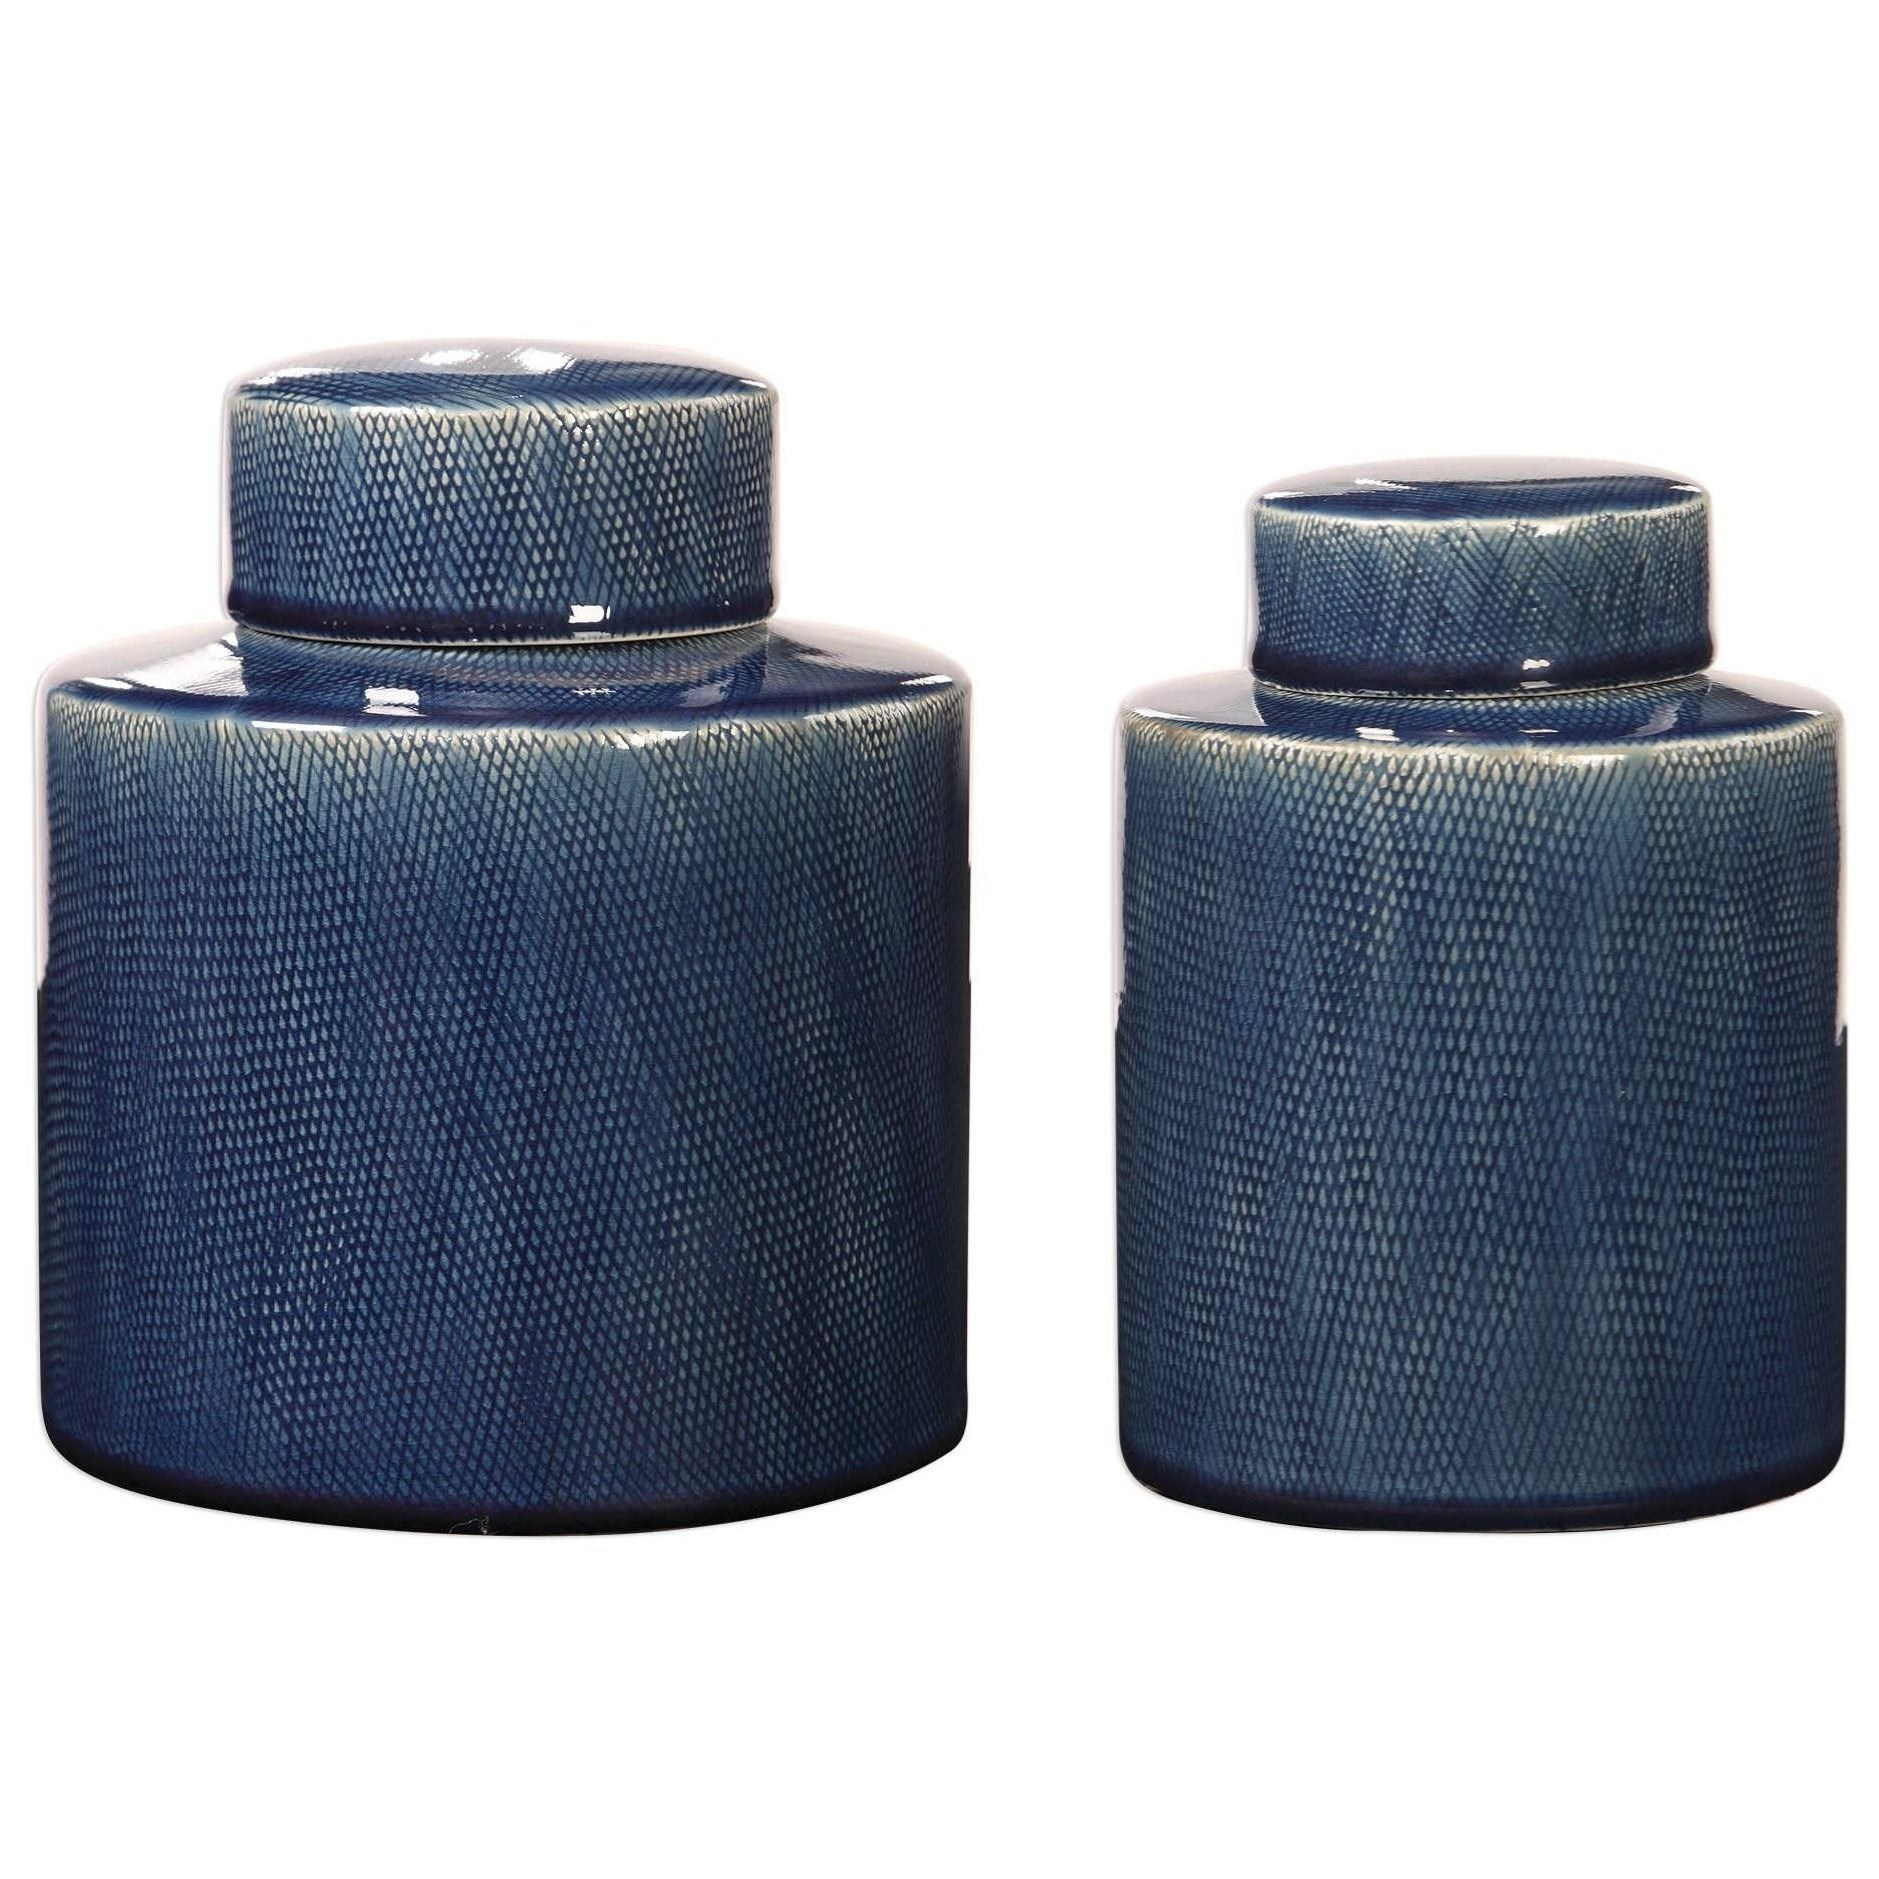 Saniya Blue Containers, S/2